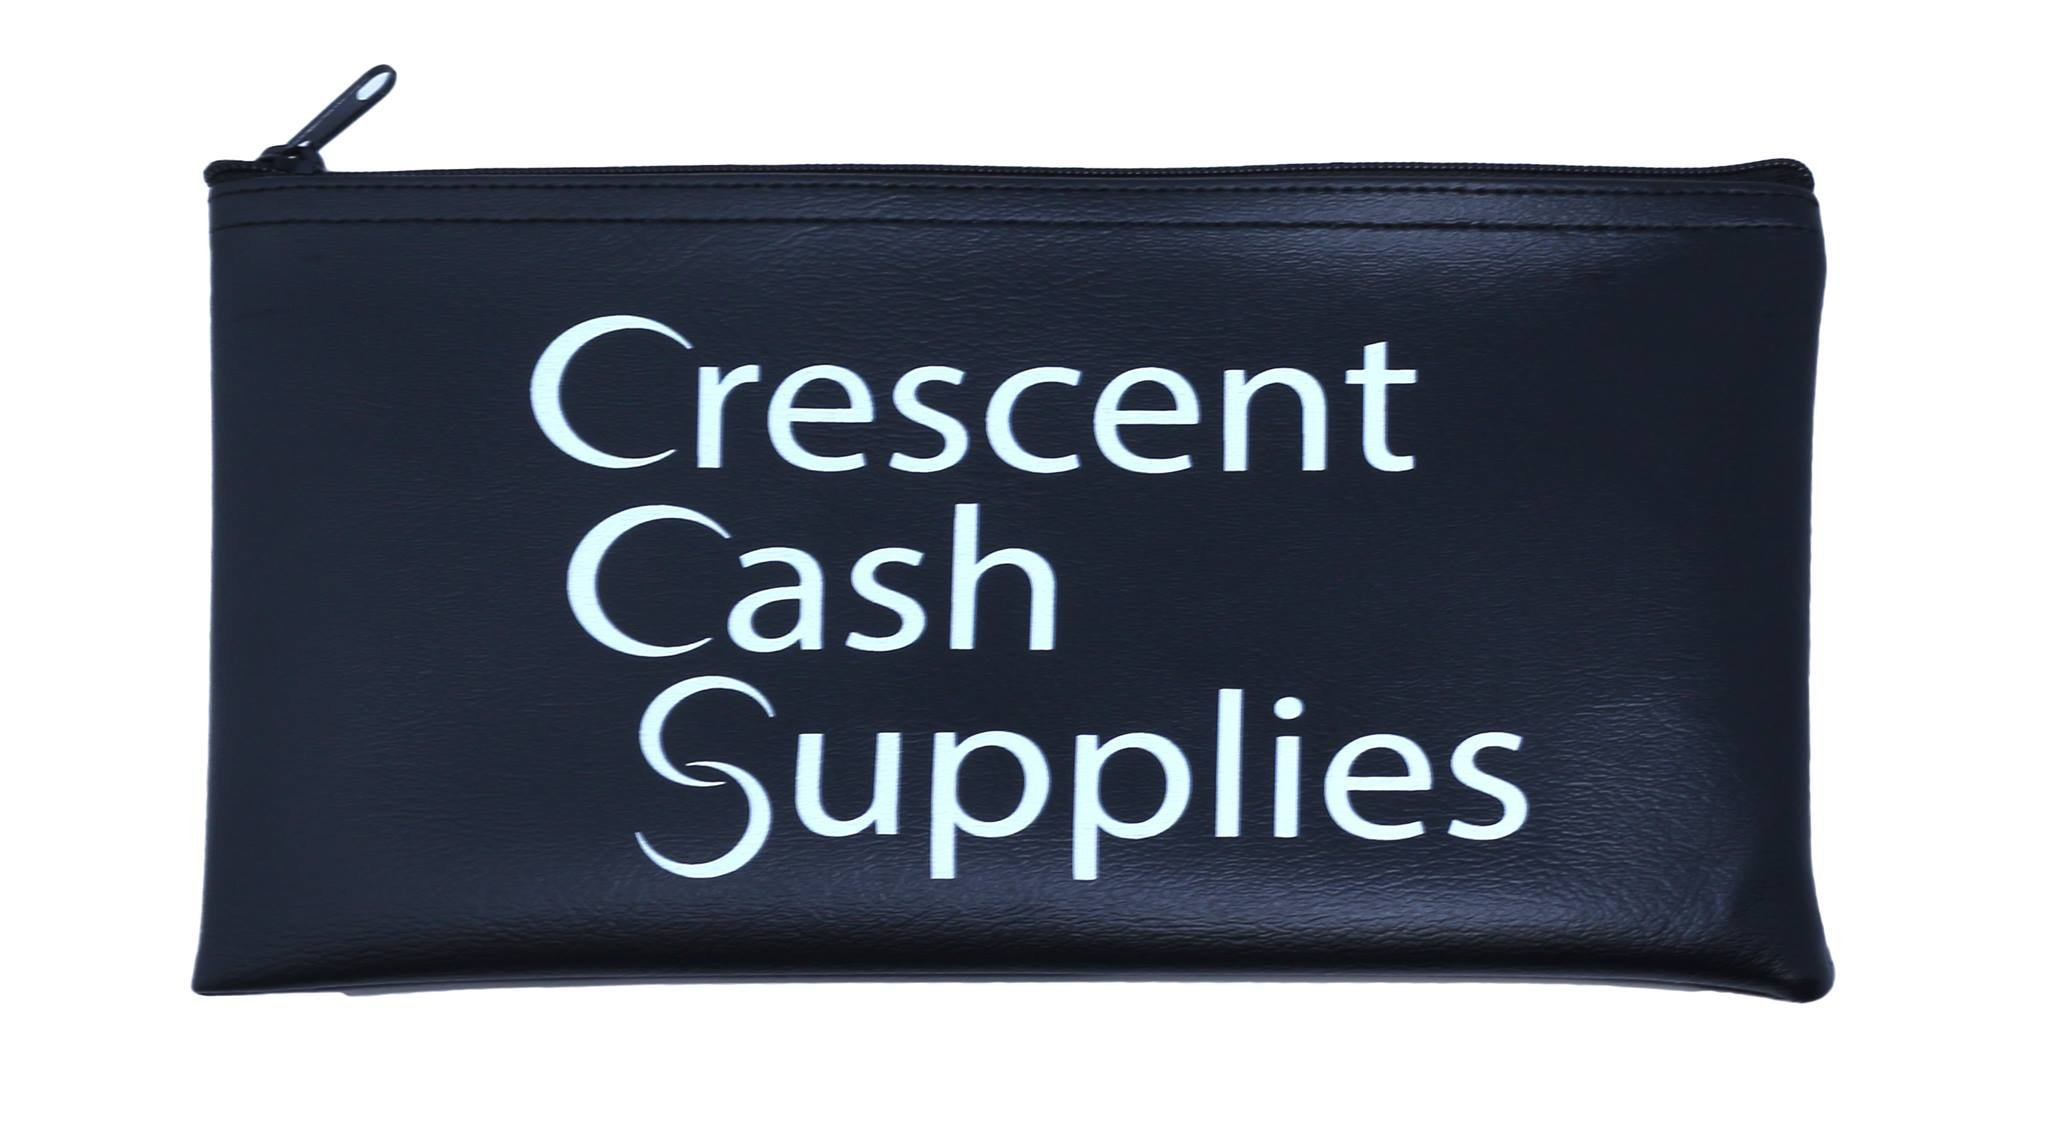 Bank Deposit Security Bags for Cash. Tamper Evident and Resistant Plastic, Perfect for Night Time Safe Money Drop. Comes with 100 Bags and 1 Black Vinyl Pouch.